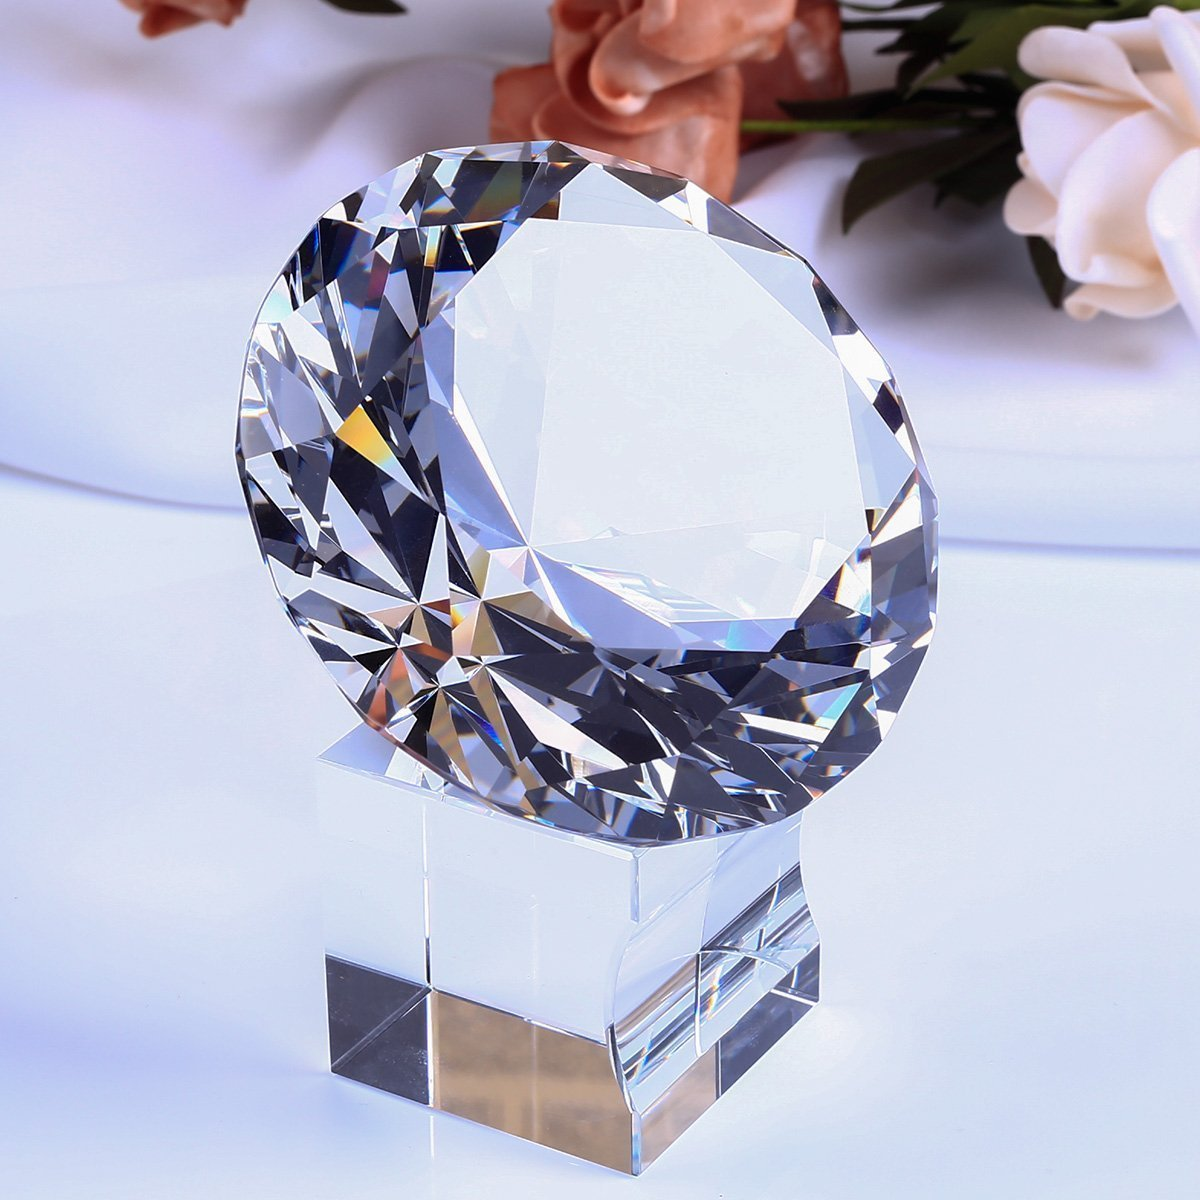 EOFEEL large diamond crystal glass paperweight with stand home office decor gifes (3 inches)